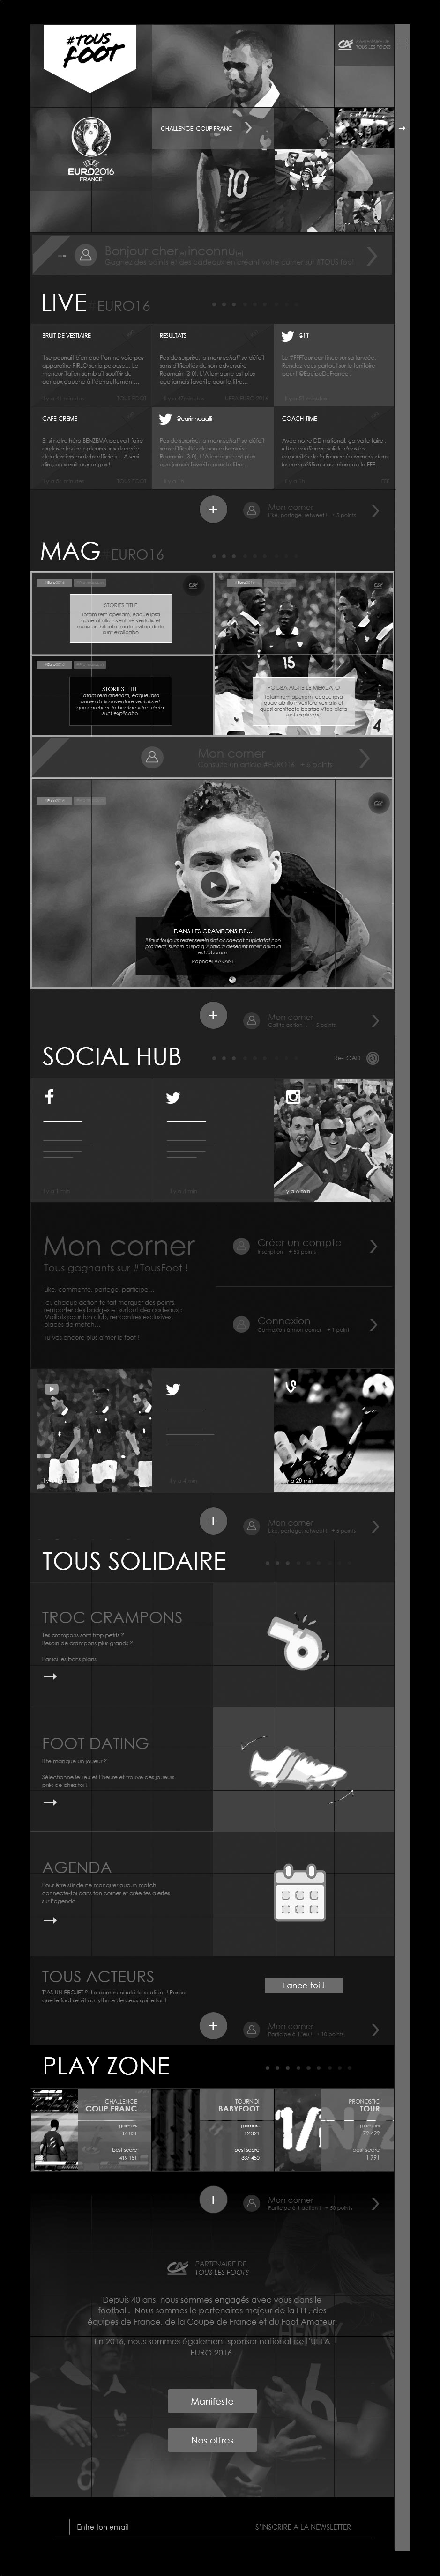 wireframe page d'accueil responsive tous foot credit agricole